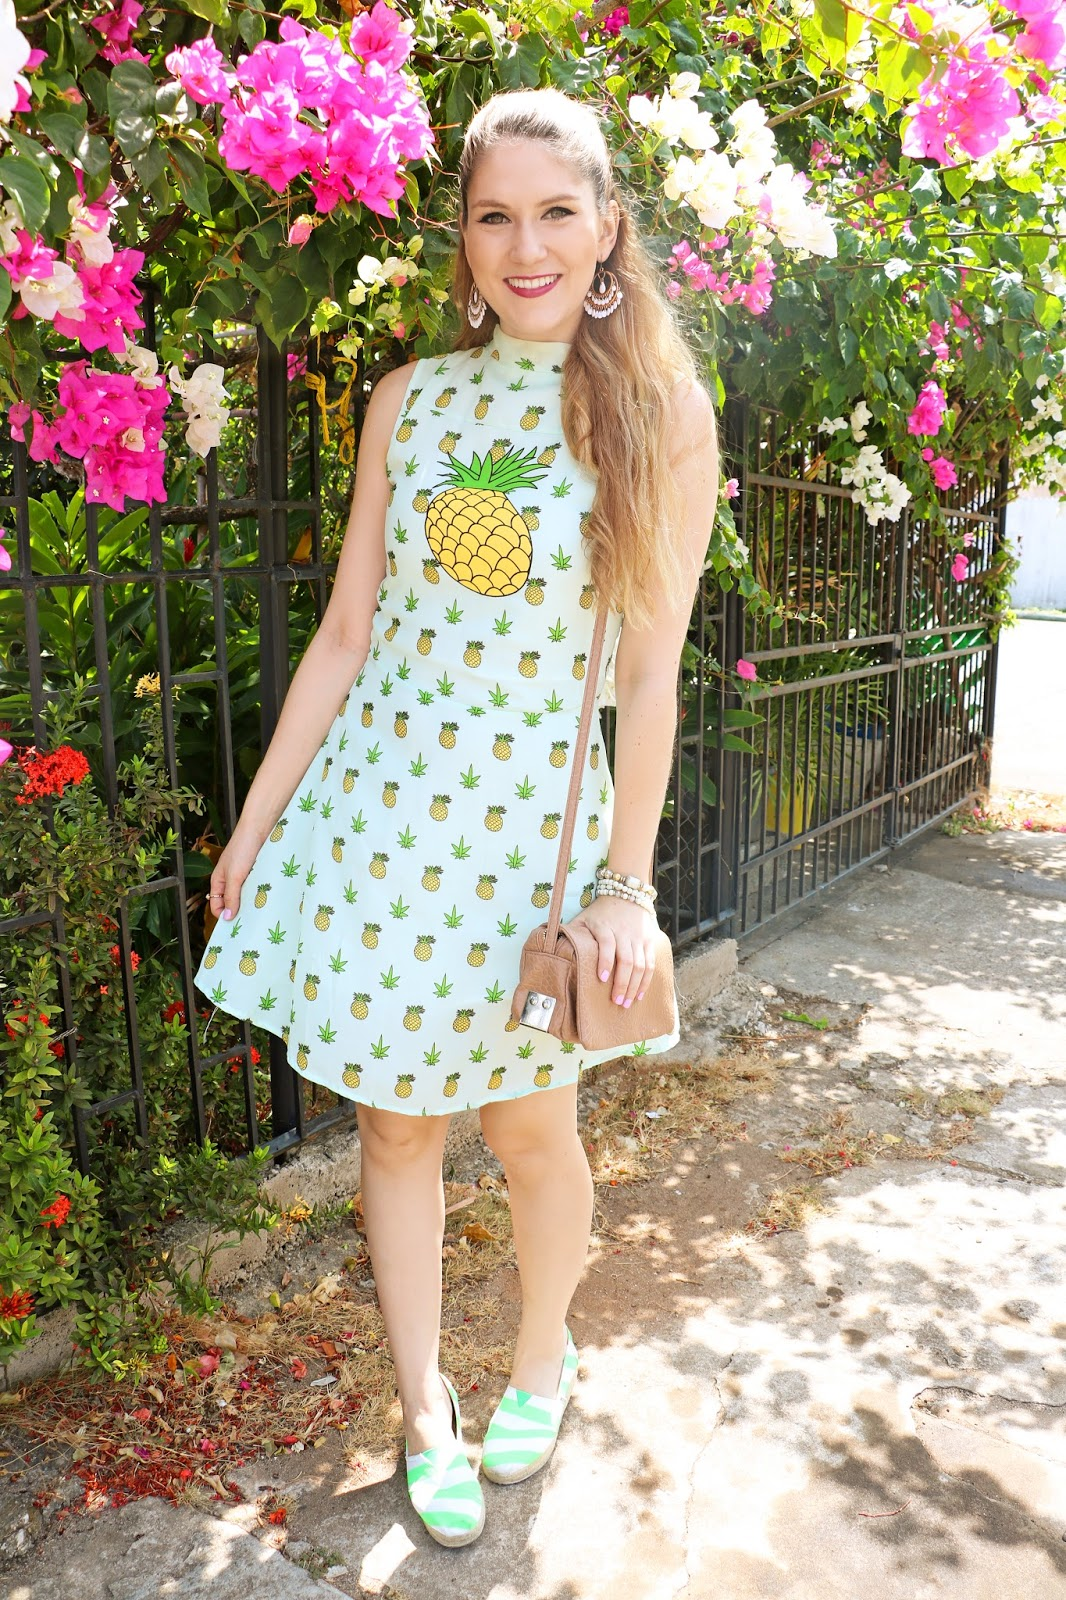 This pineapple dress is so cute!